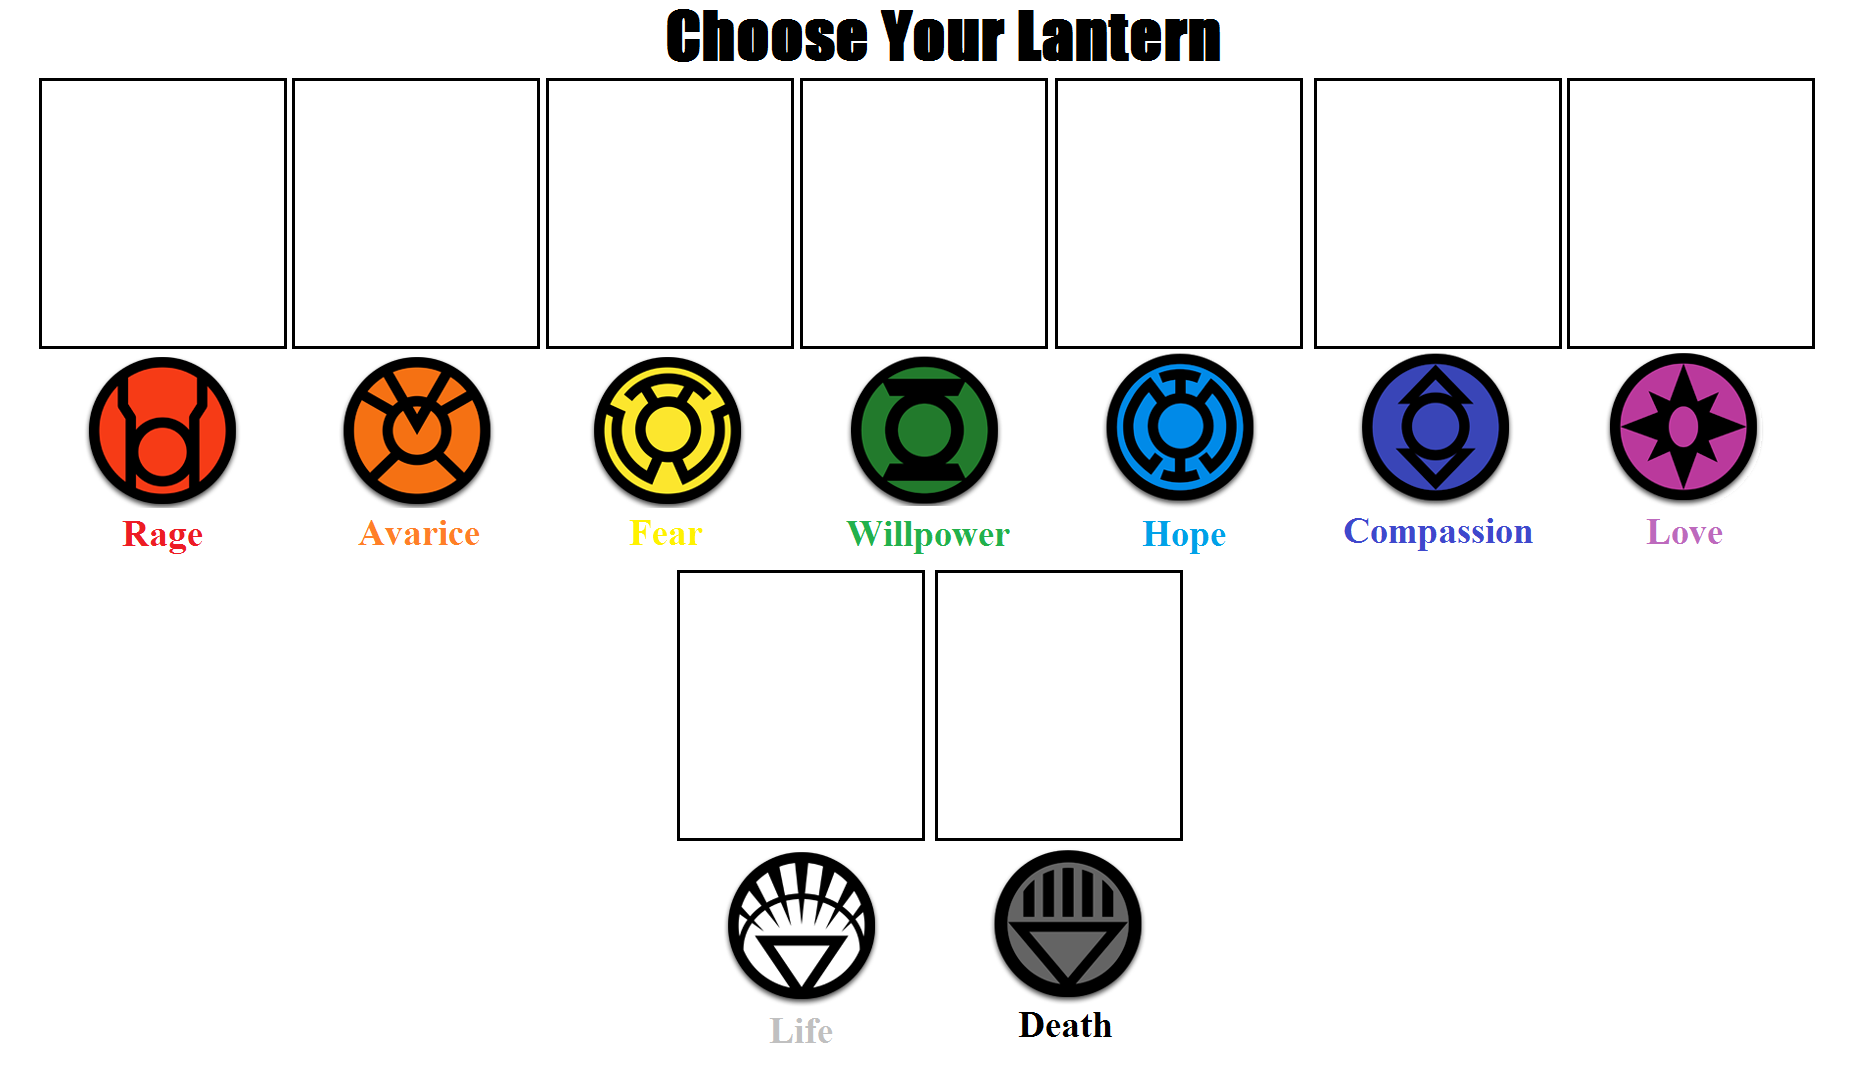 choose_your_lantern_meme__updated__by_powershade117 d7fqro3 choose your lantern meme (updated) by powershade117 on deviantart